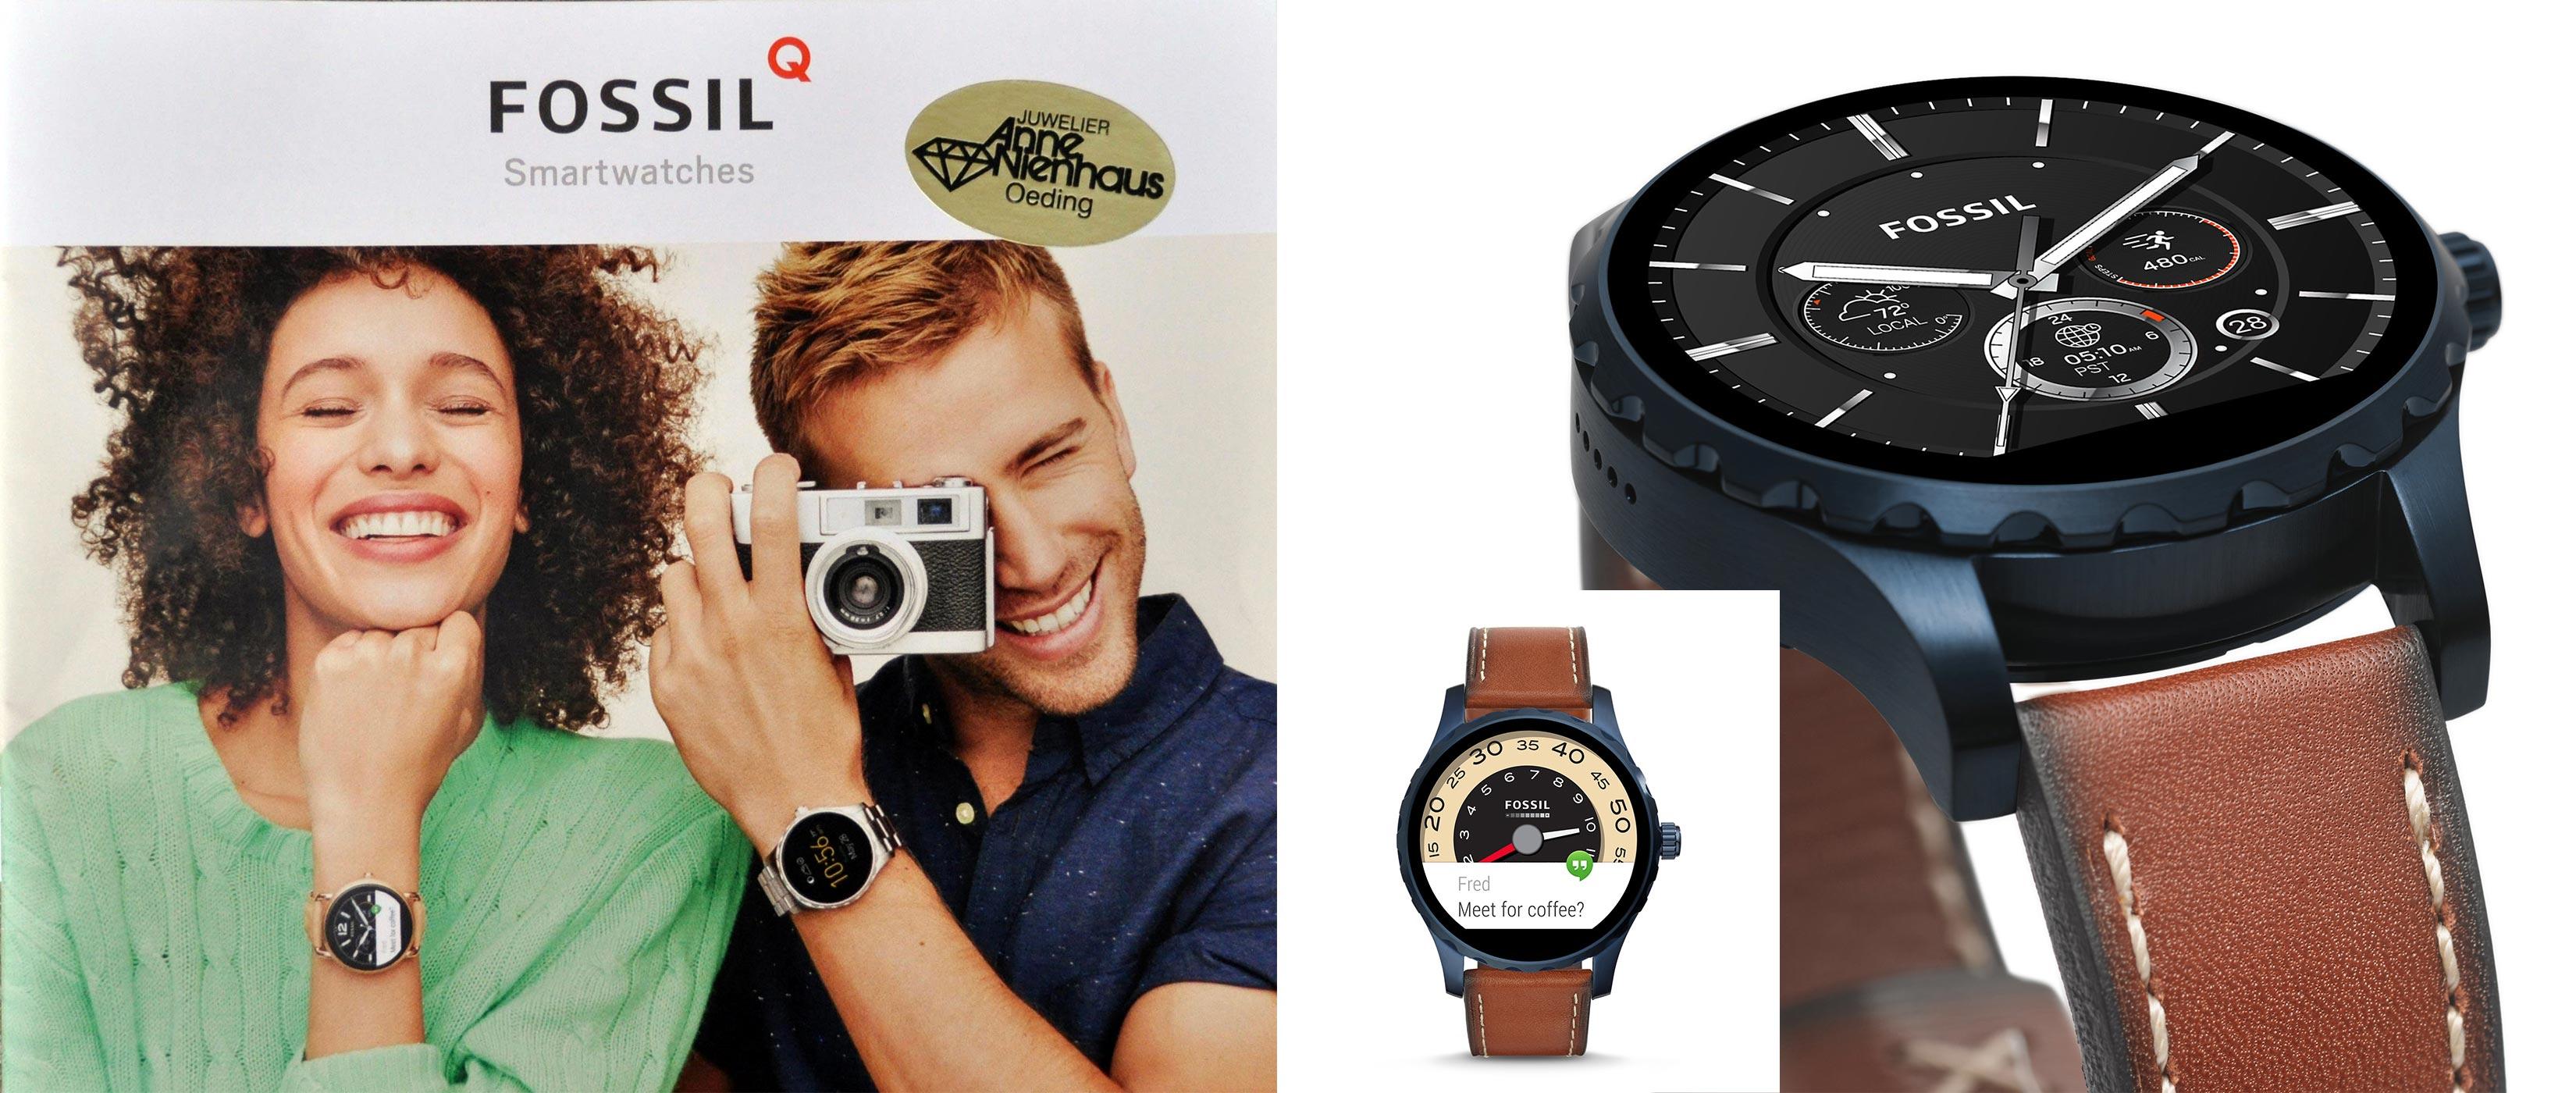 FOSSIL Q - Smartwatches